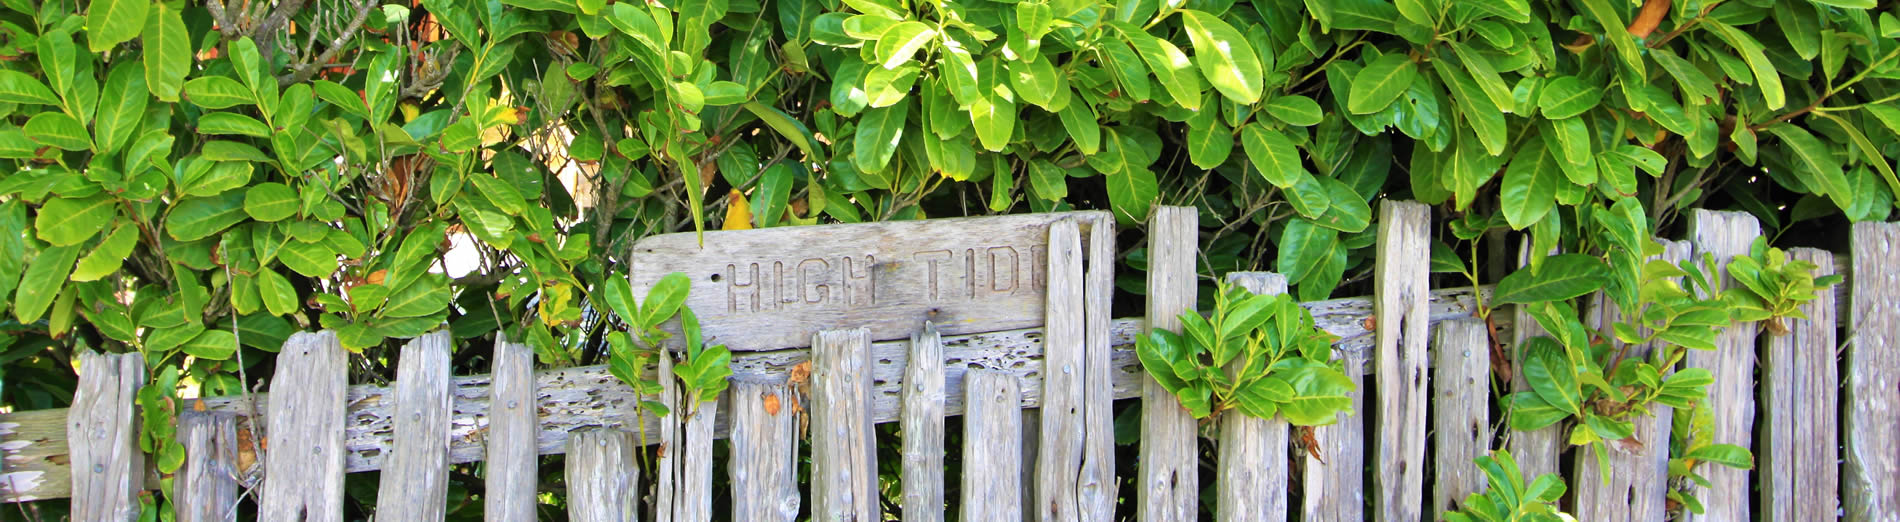 high tide cottages on tomales bay in marshall ca fence with sign